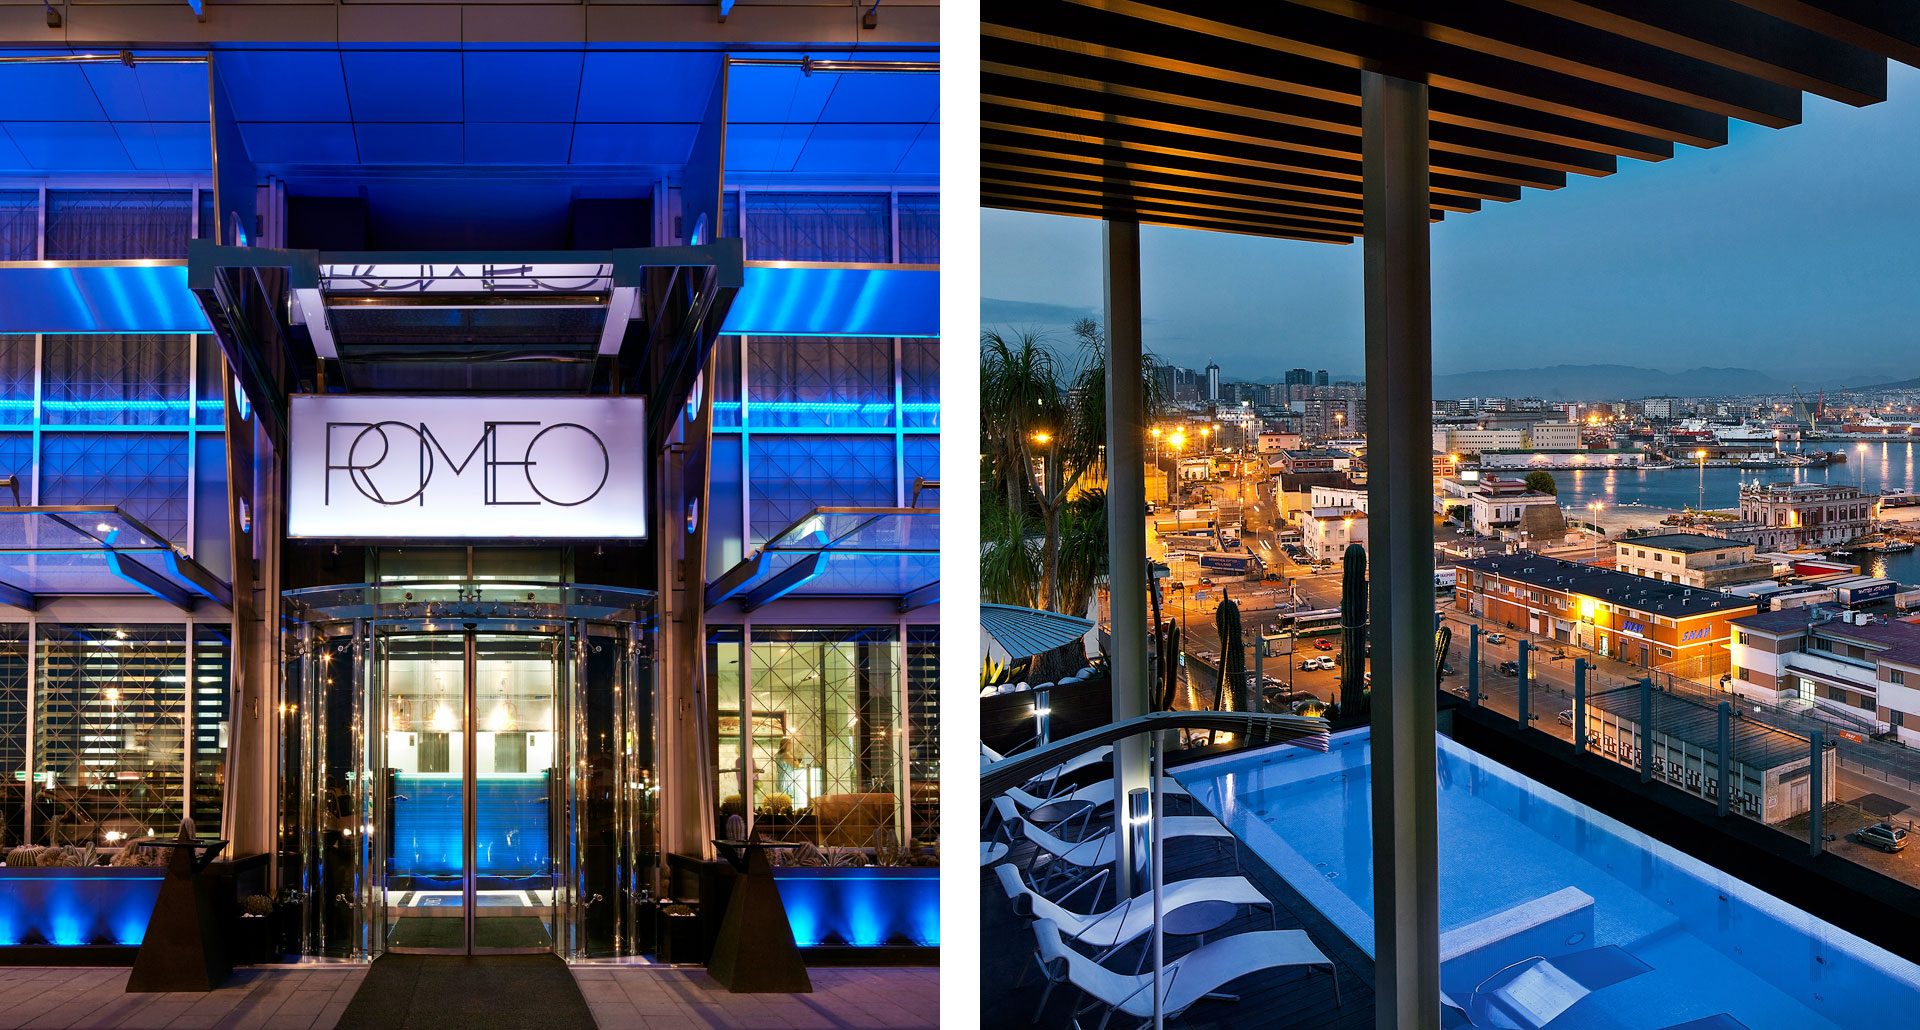 Romeo Hotel - boutique hotel in Napoli